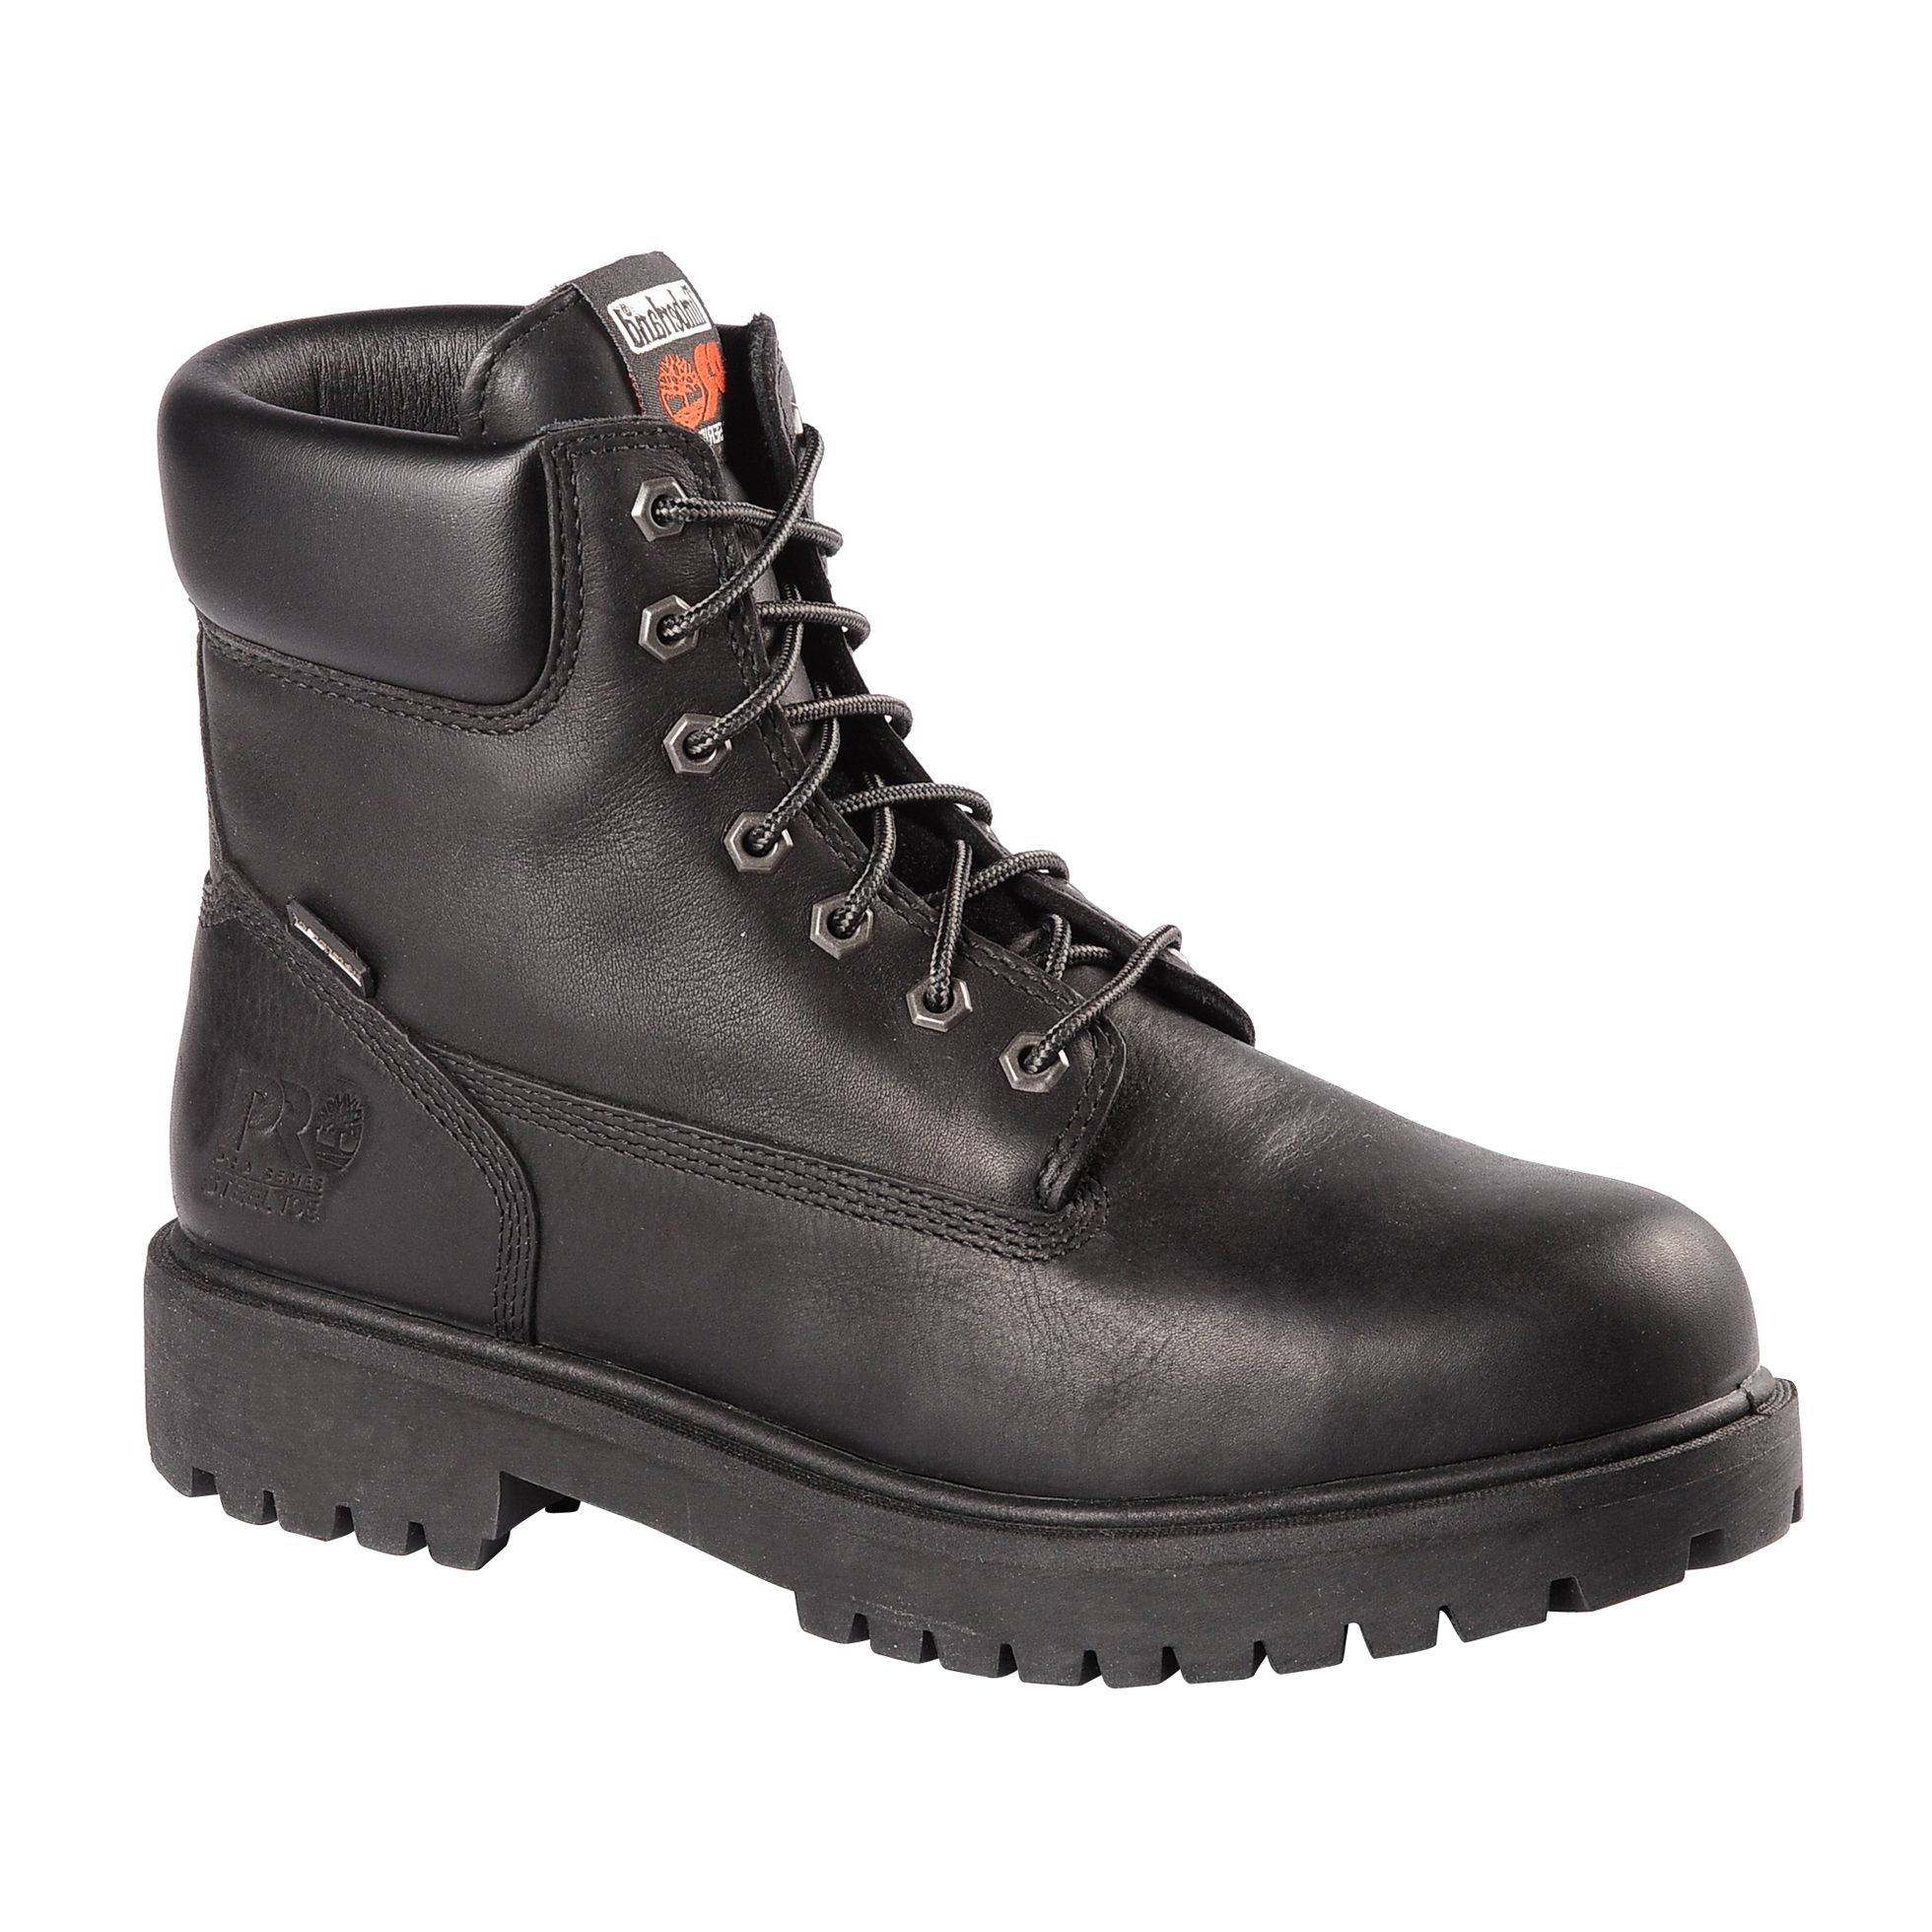 Men's Work Boot 6